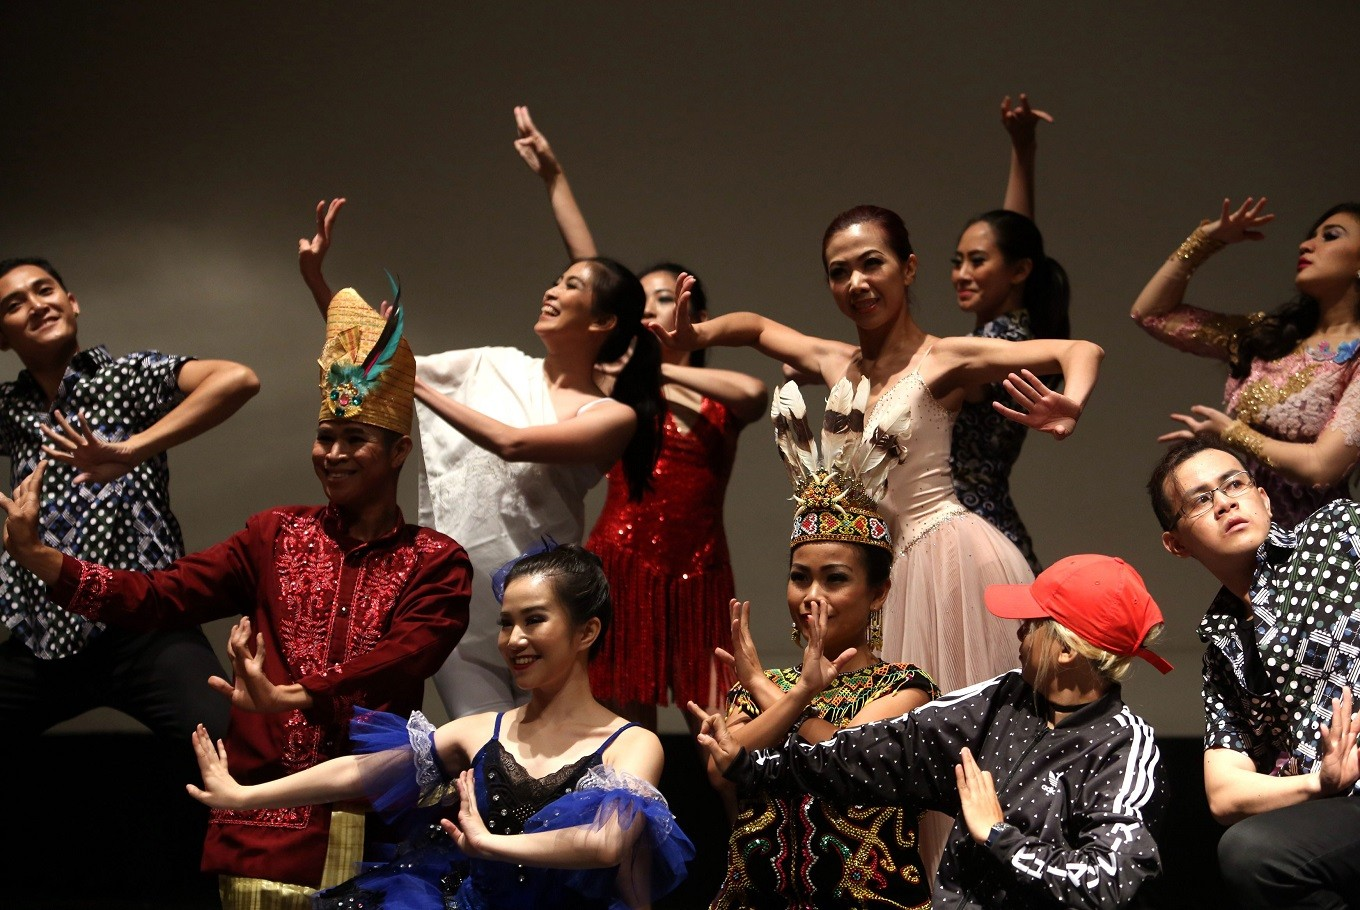 Organizers wanted the art of dancing to combine music, passion, soul, fashion and make-up. JP/ Seto Wardhana